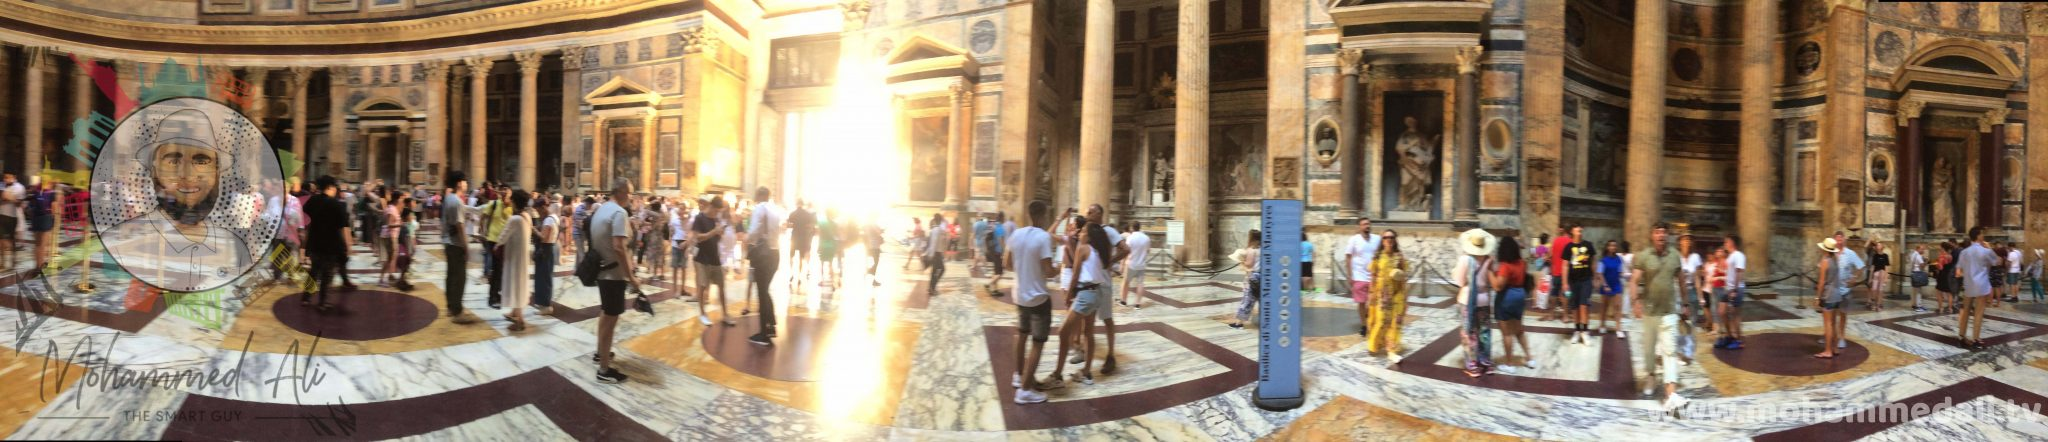 Spectacular natural light inside epic Pantheon in Rome, Italy